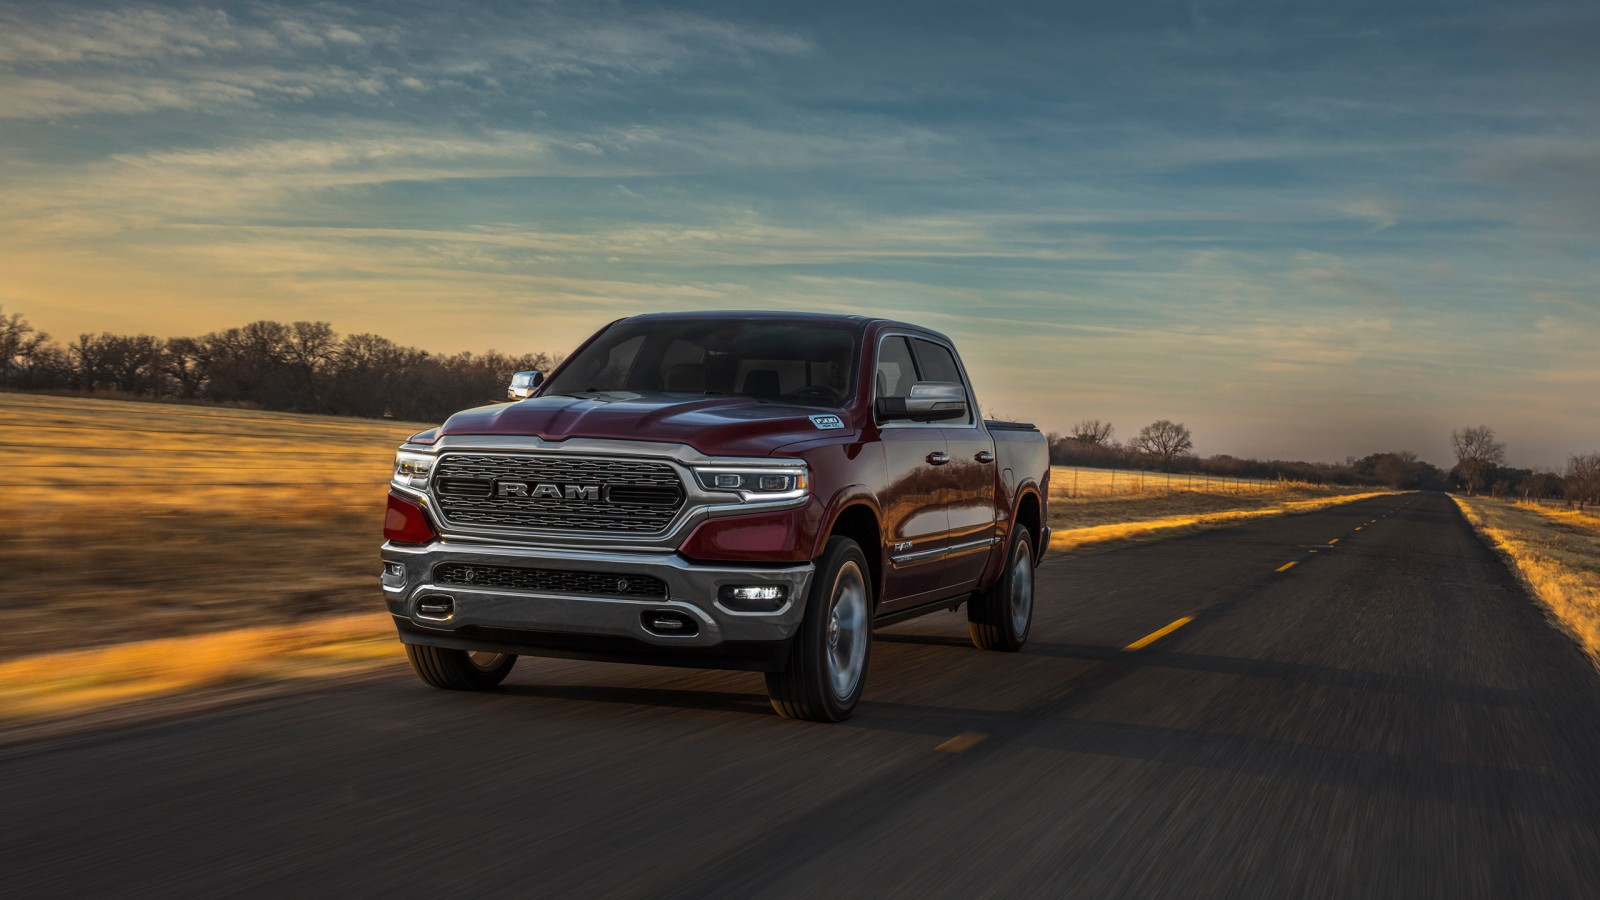 2019 Ram 1500 Limited Crew Cab Wallpaper HD Car